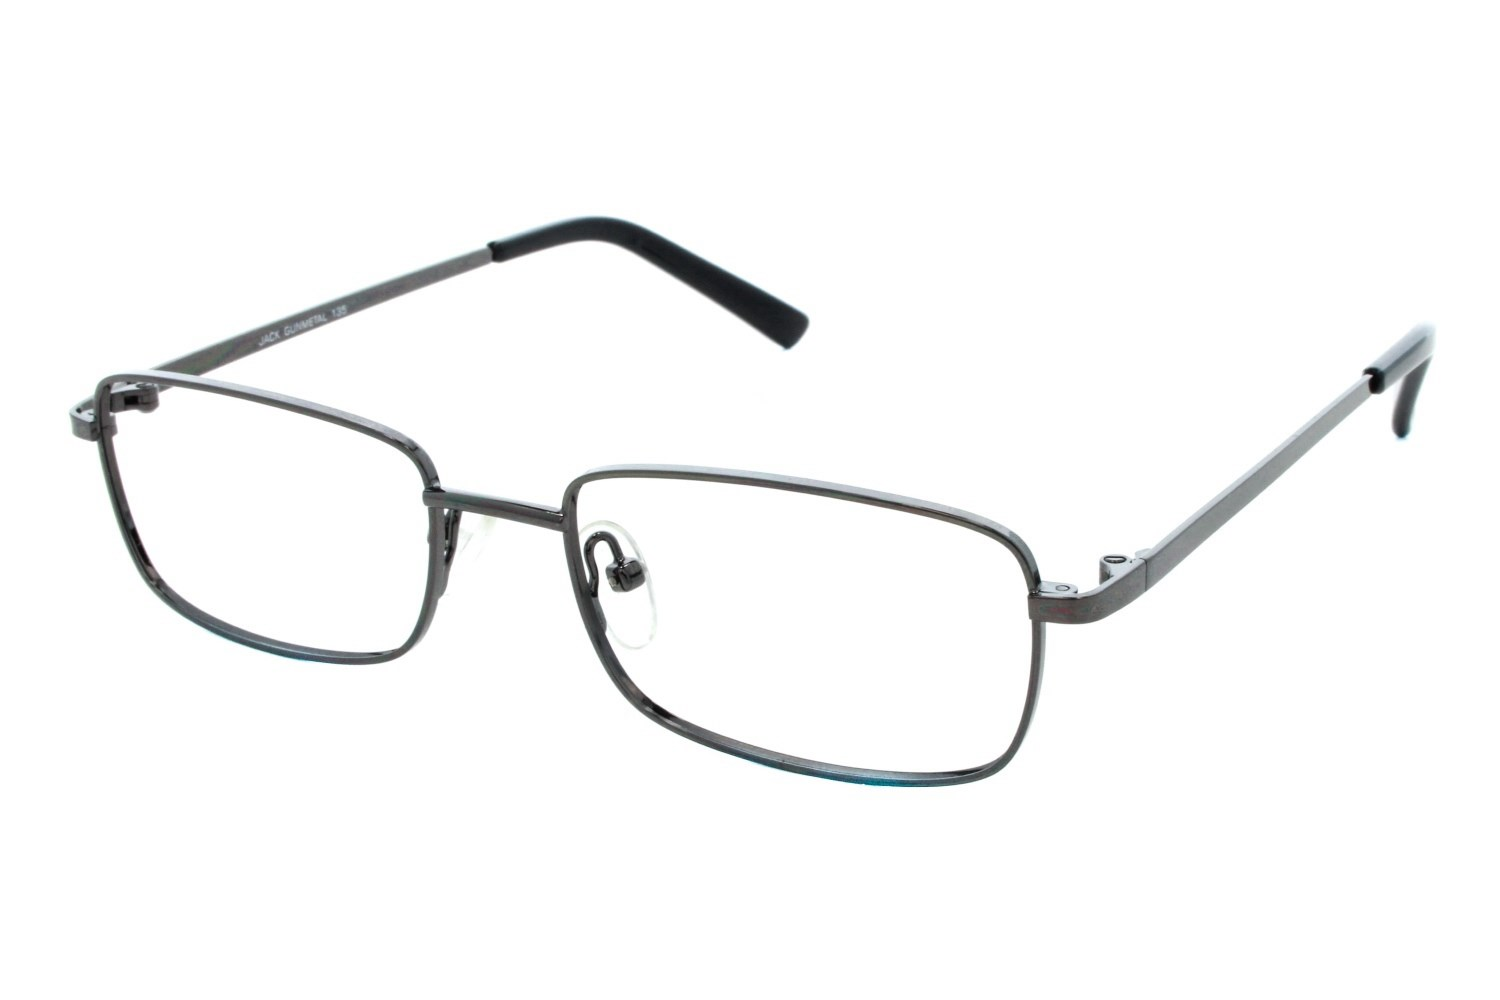 Heartland Jack Prescription Eyeglasses Frames